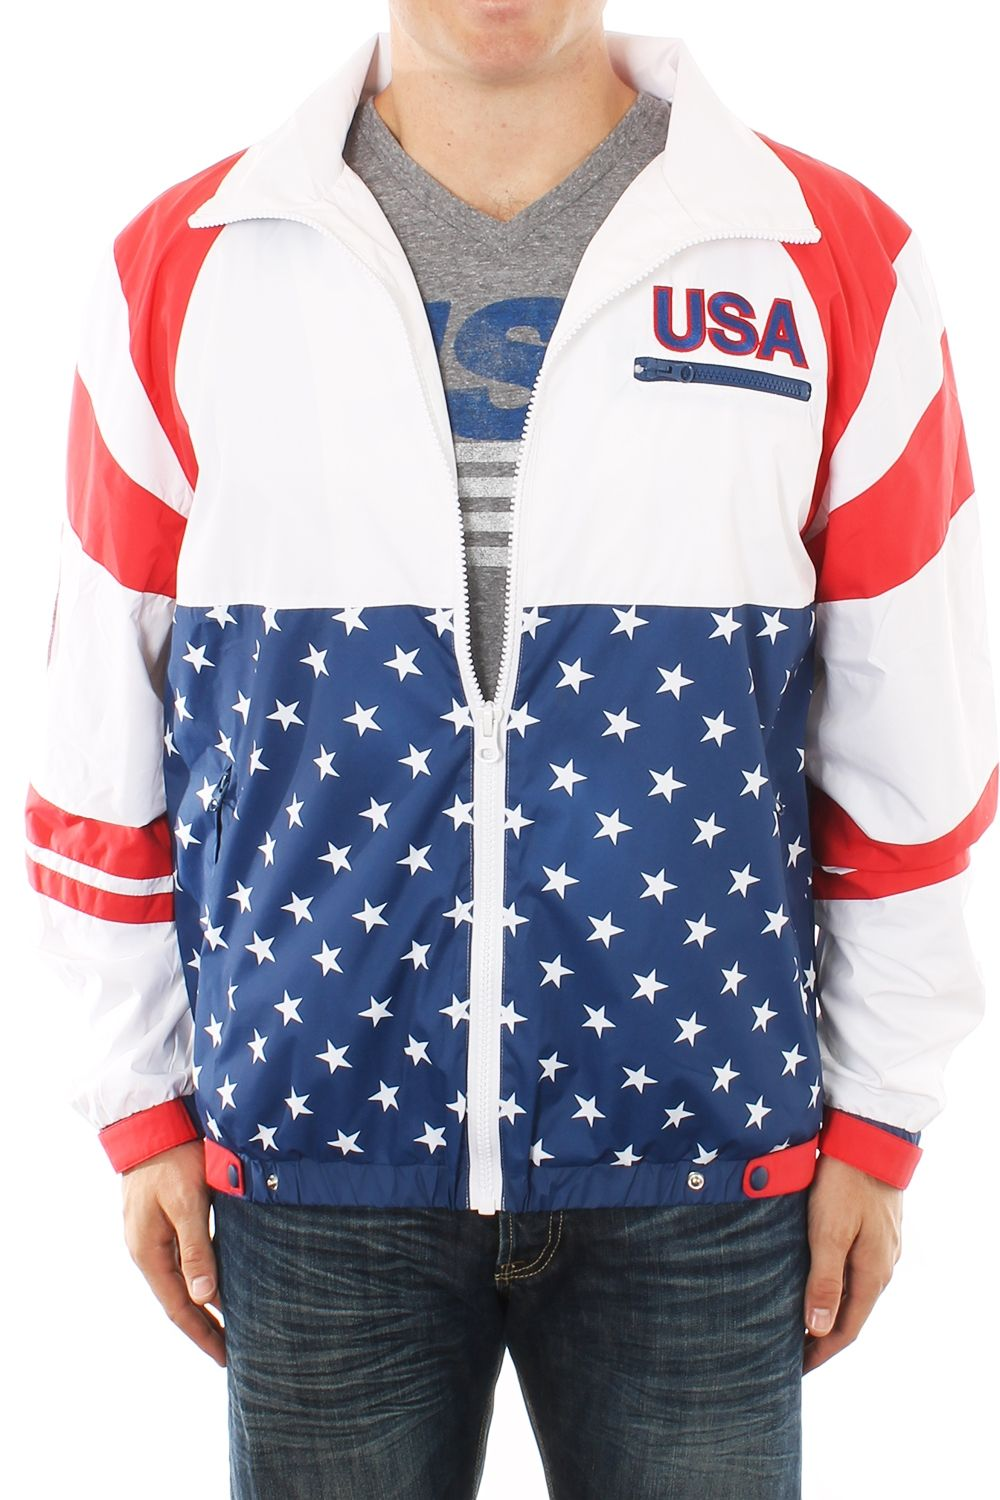 Men's USA Jacket Usa windbreaker, American flag clothes